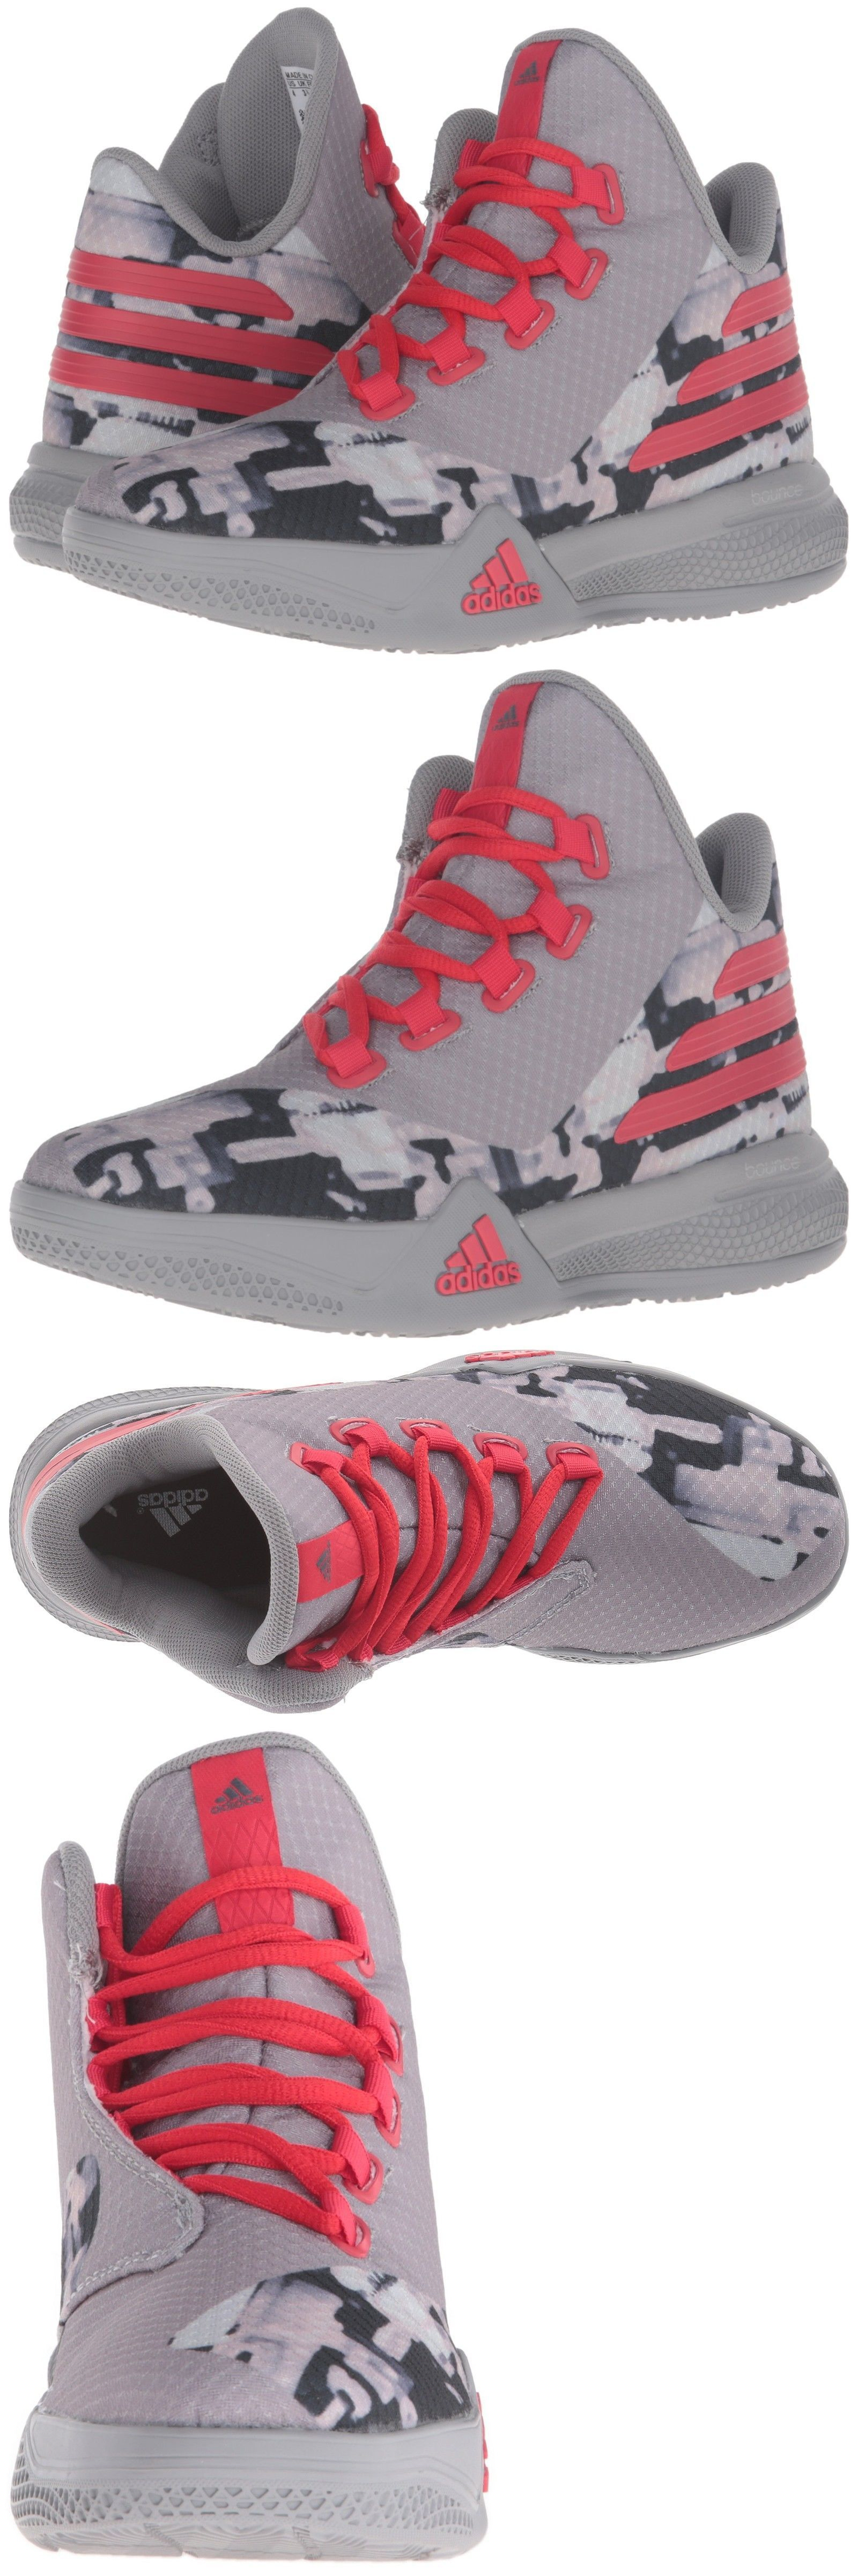 timeless design 071ea 398ea Adidas Light Em Up 2 J Basketball Shoe Sz 5Y B42912 Gray Red Blk - BUY IT  NOW ONLY 44.16 on eBay!